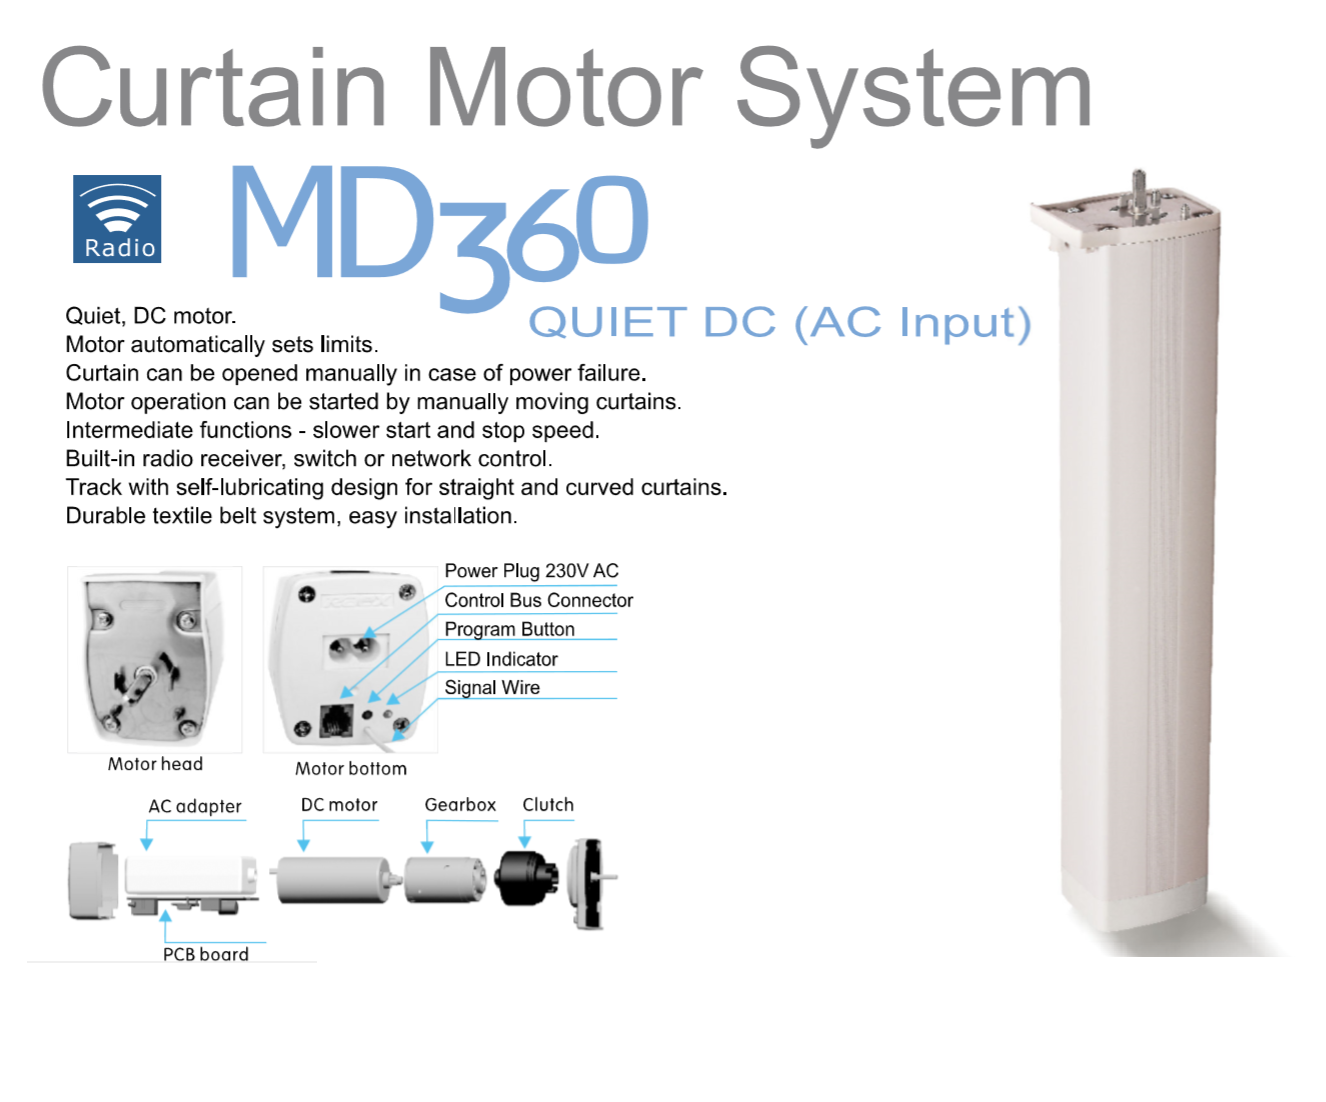 Electric Curtains Specification MD360